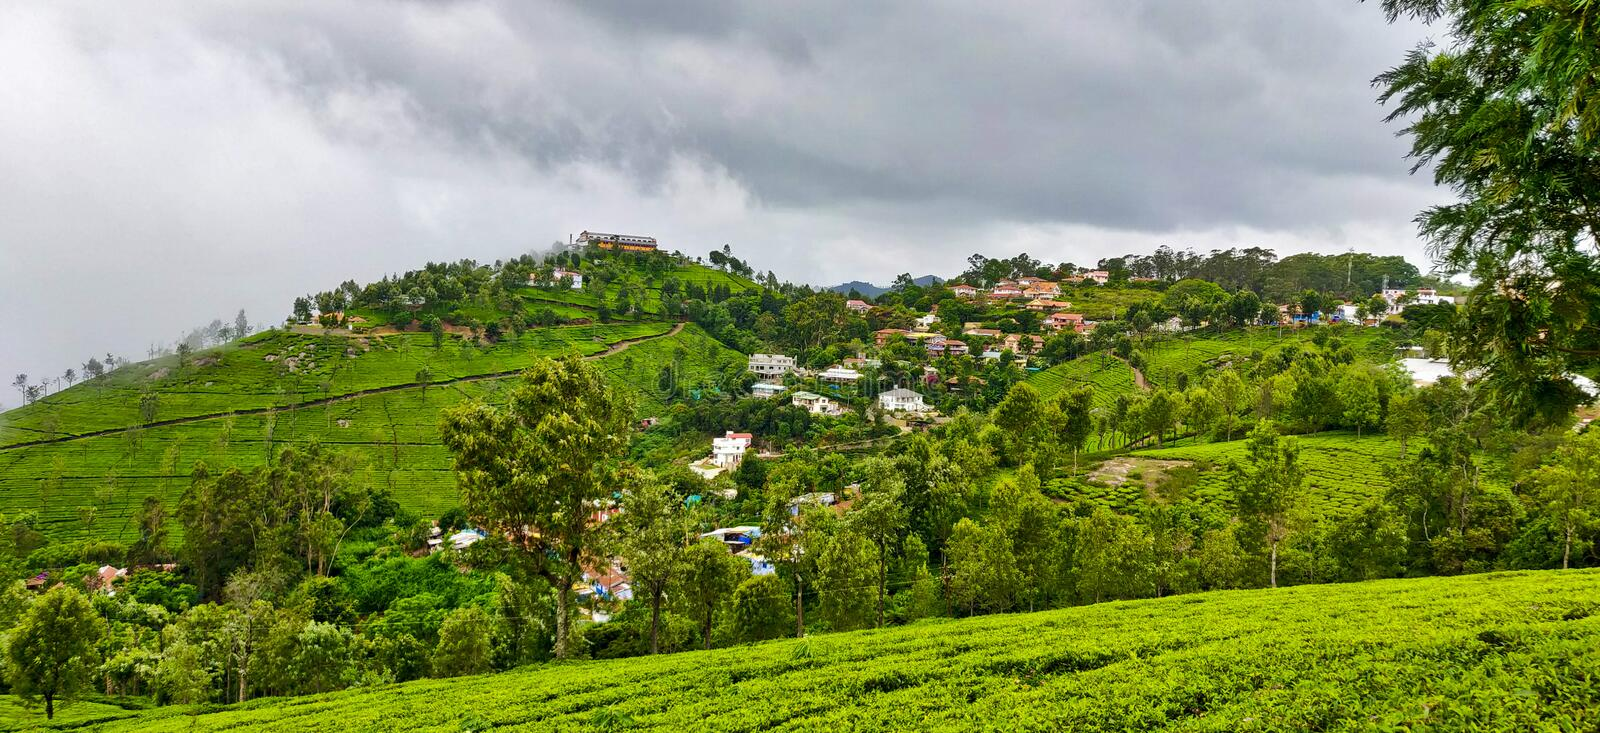 Houses on the hills of Coonoor under the rainy clouds of monsoon stock photography